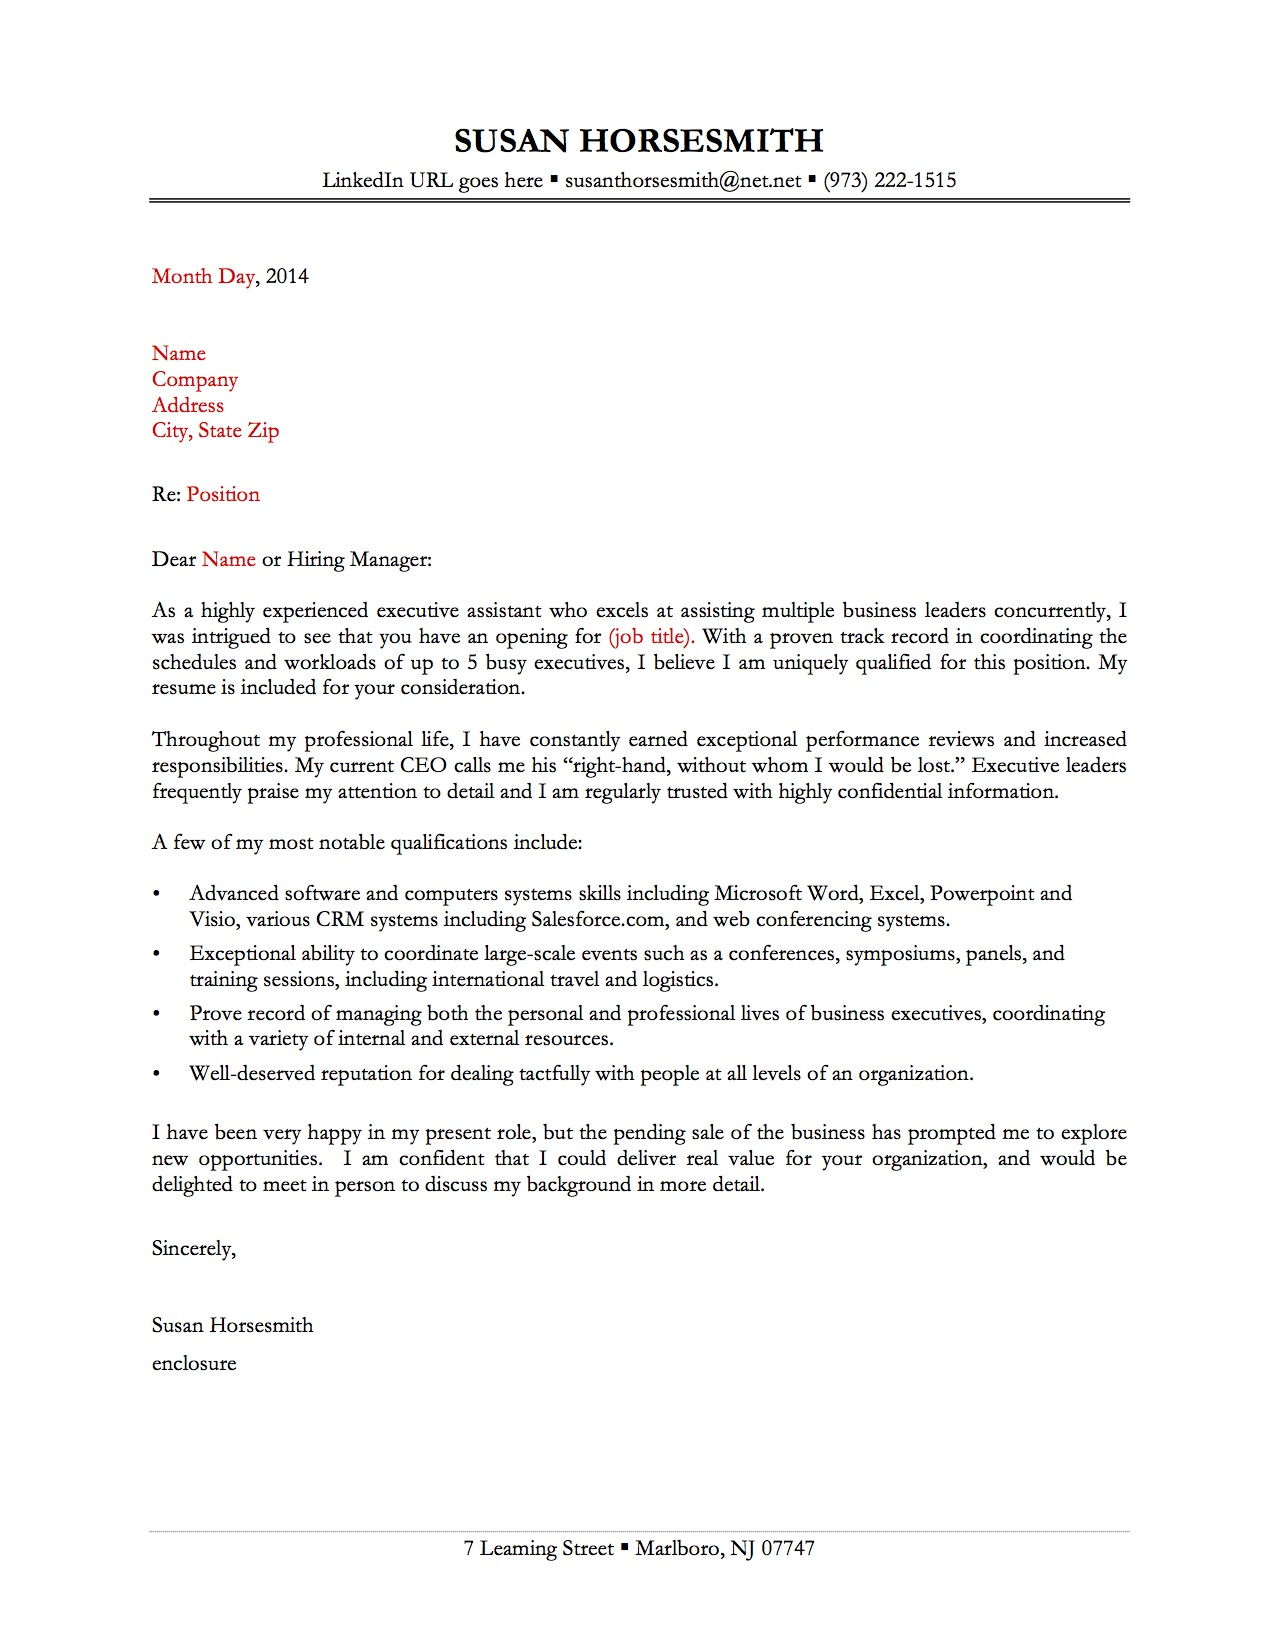 sample cover letter 1. cover letter in email format resume cover ...